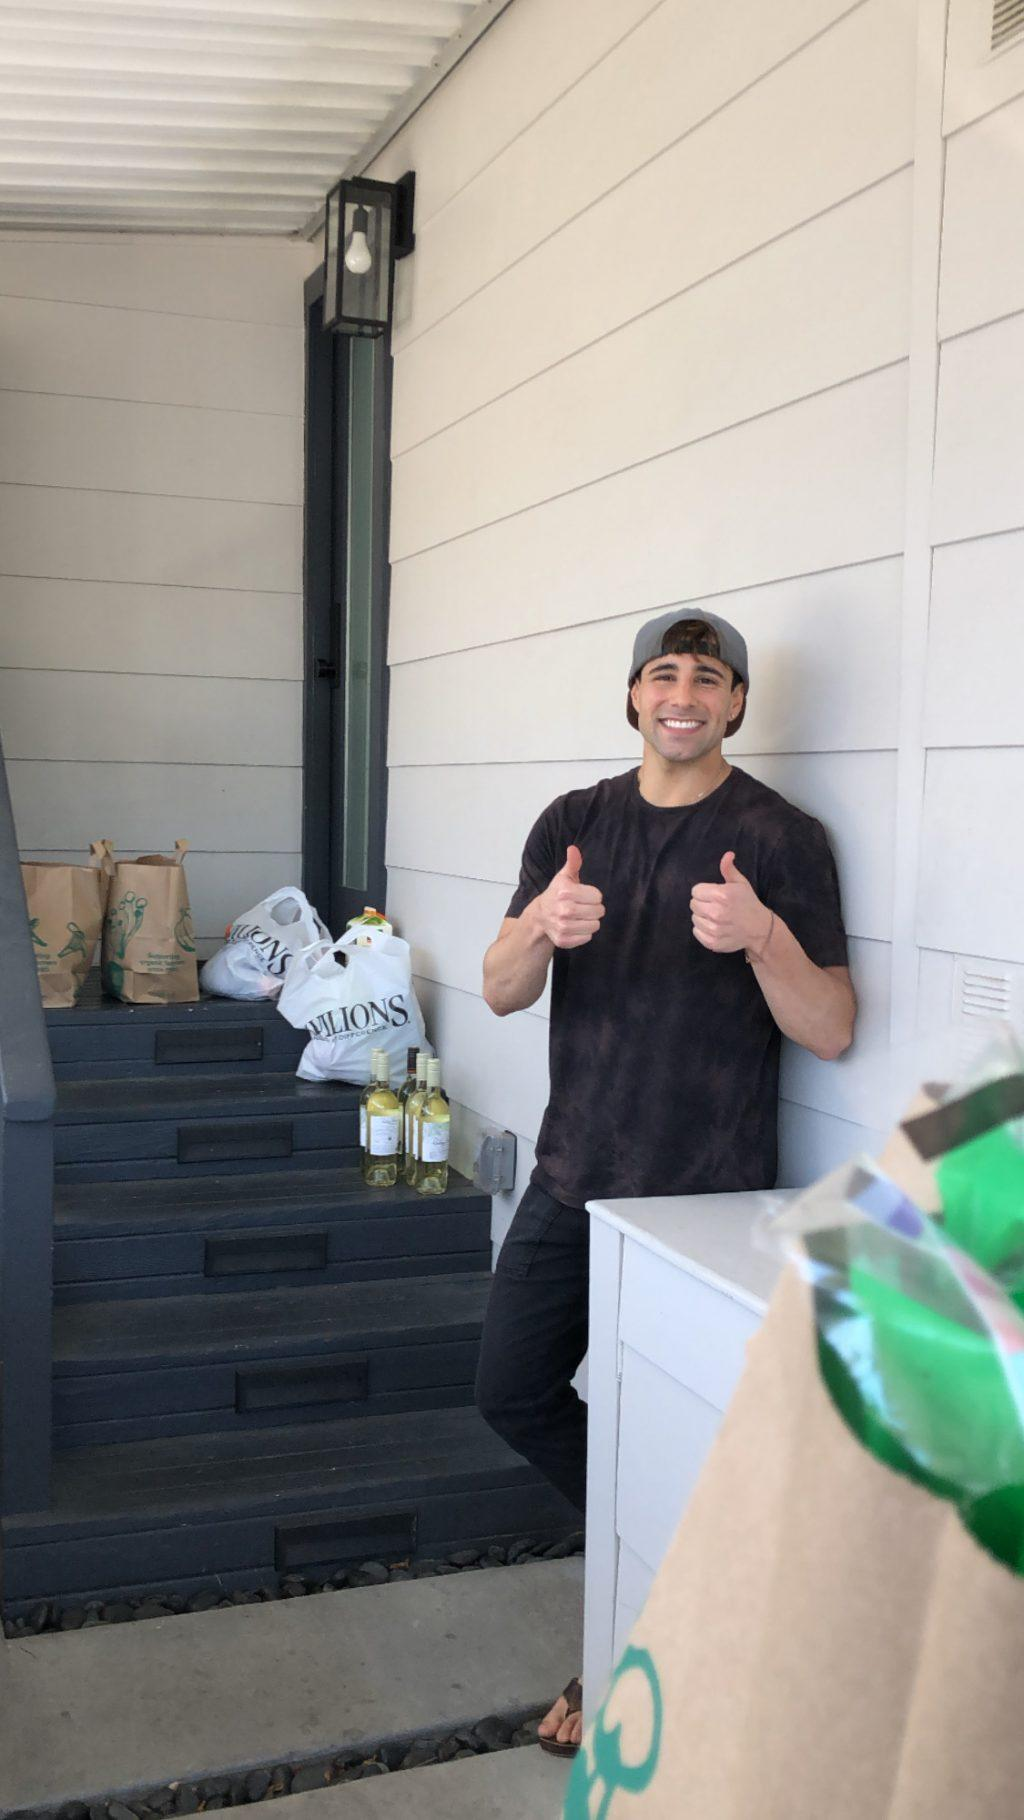 Zeke Bongiovanni delivers four bags of groceries from Whole Foods and Pavillions to his client's front steps March 21.